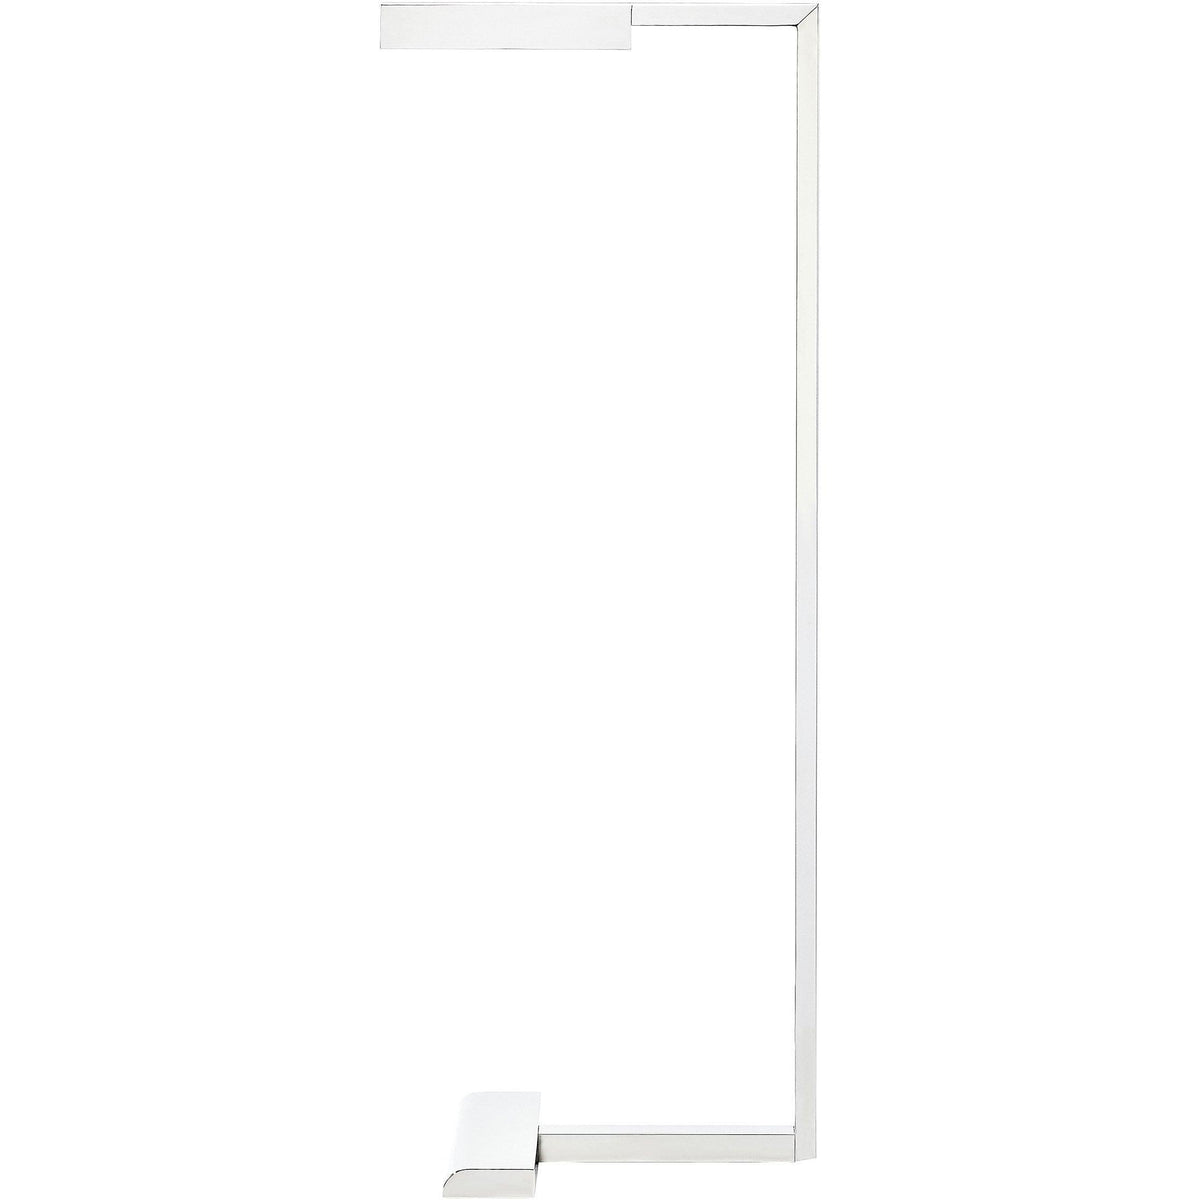 Tech Lighting - 700PRTDES46N-LED927 - LED Floor Lamp - Dessau - Polished Nickel